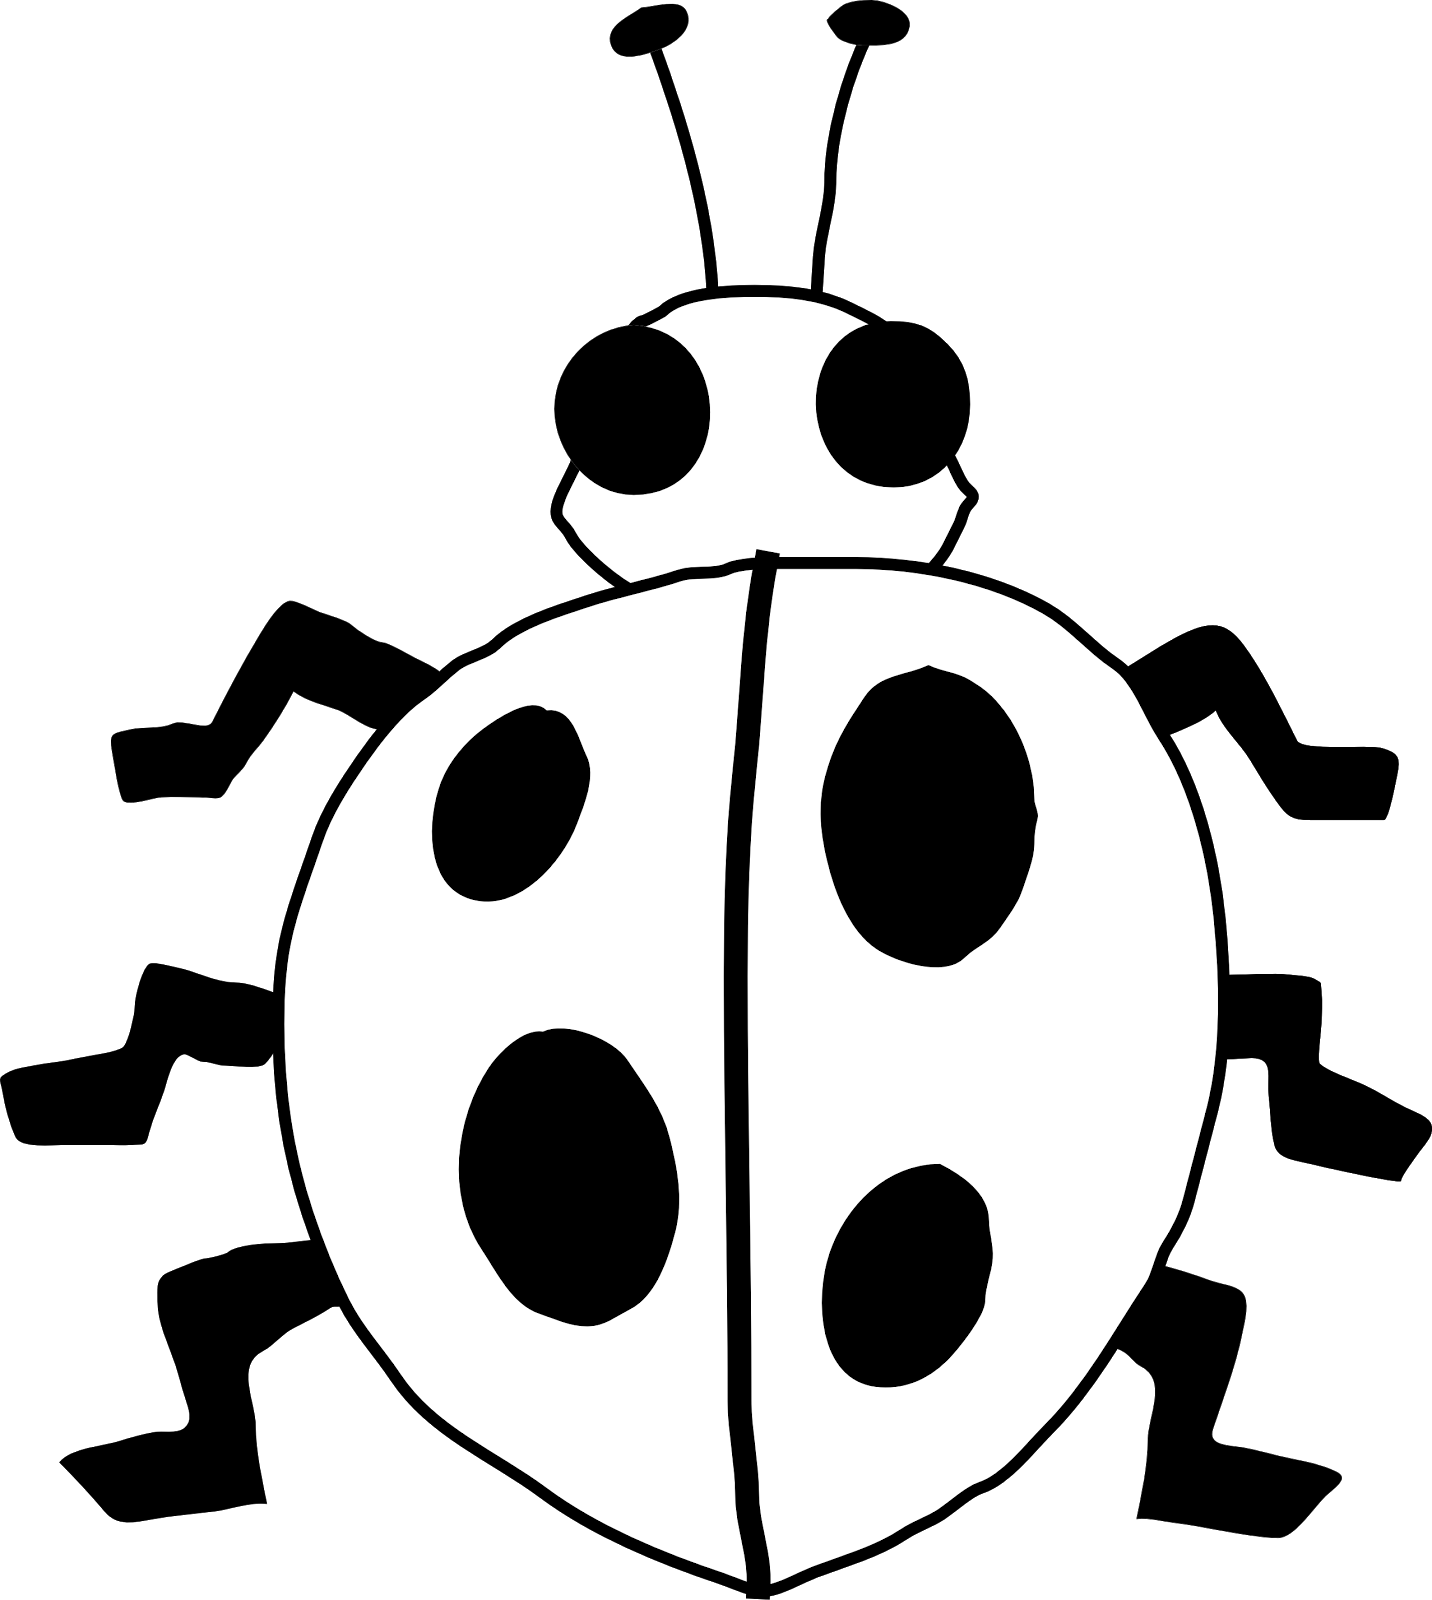 clipart black and white Ladybug Line Drawing at GetDrawings